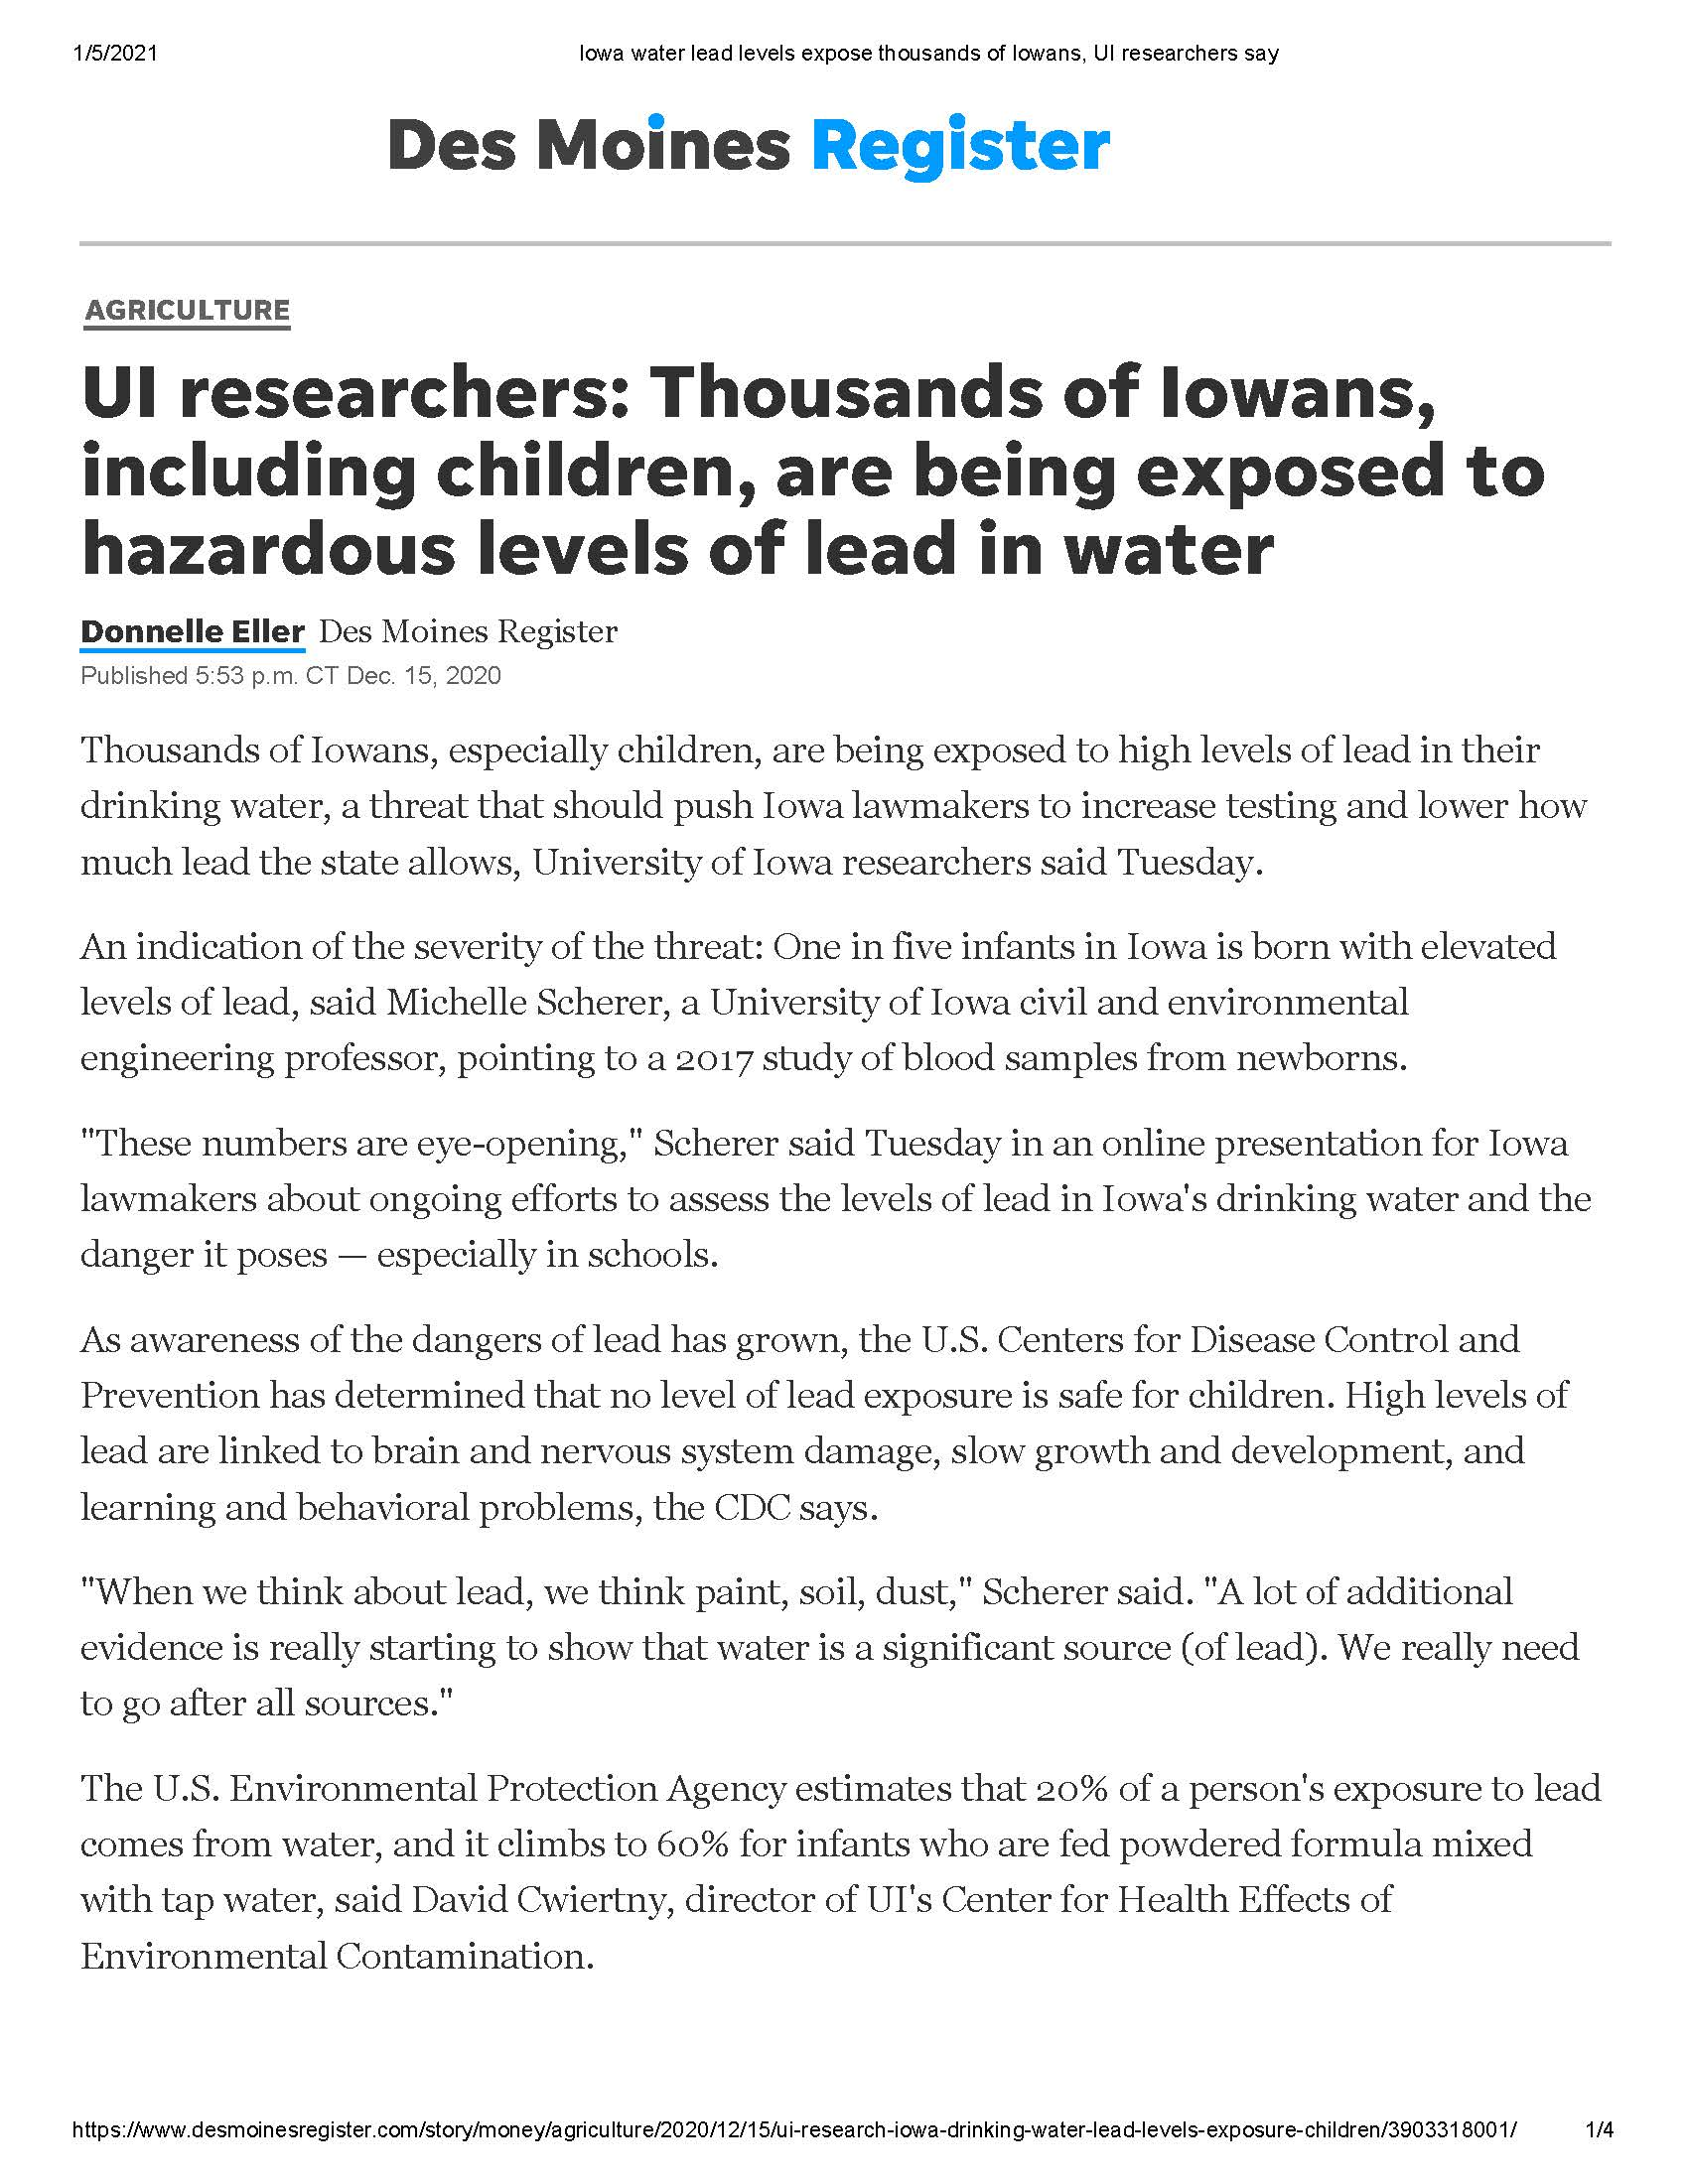 Water Quality in Iowa